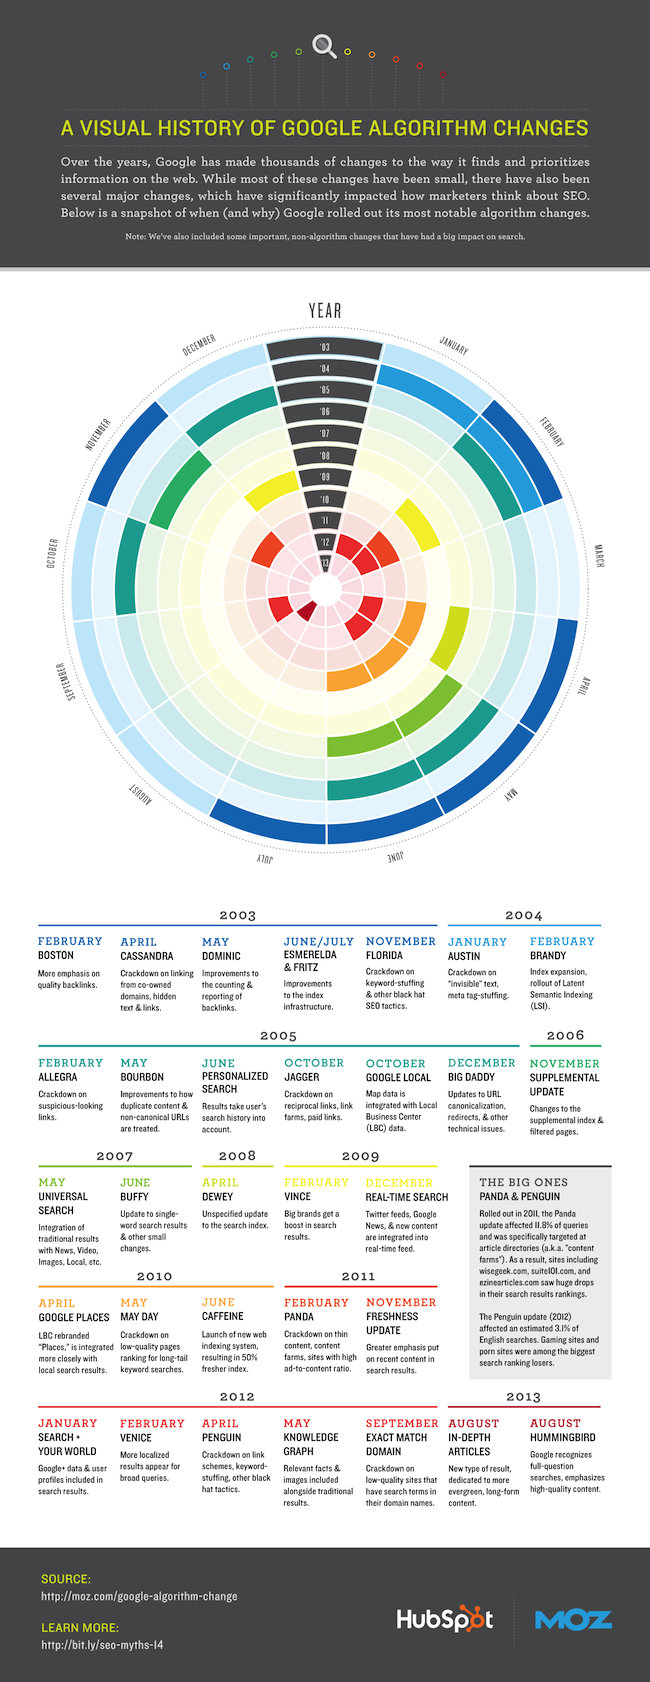 Google Algorithm Changes: A Visual History [Infographic]